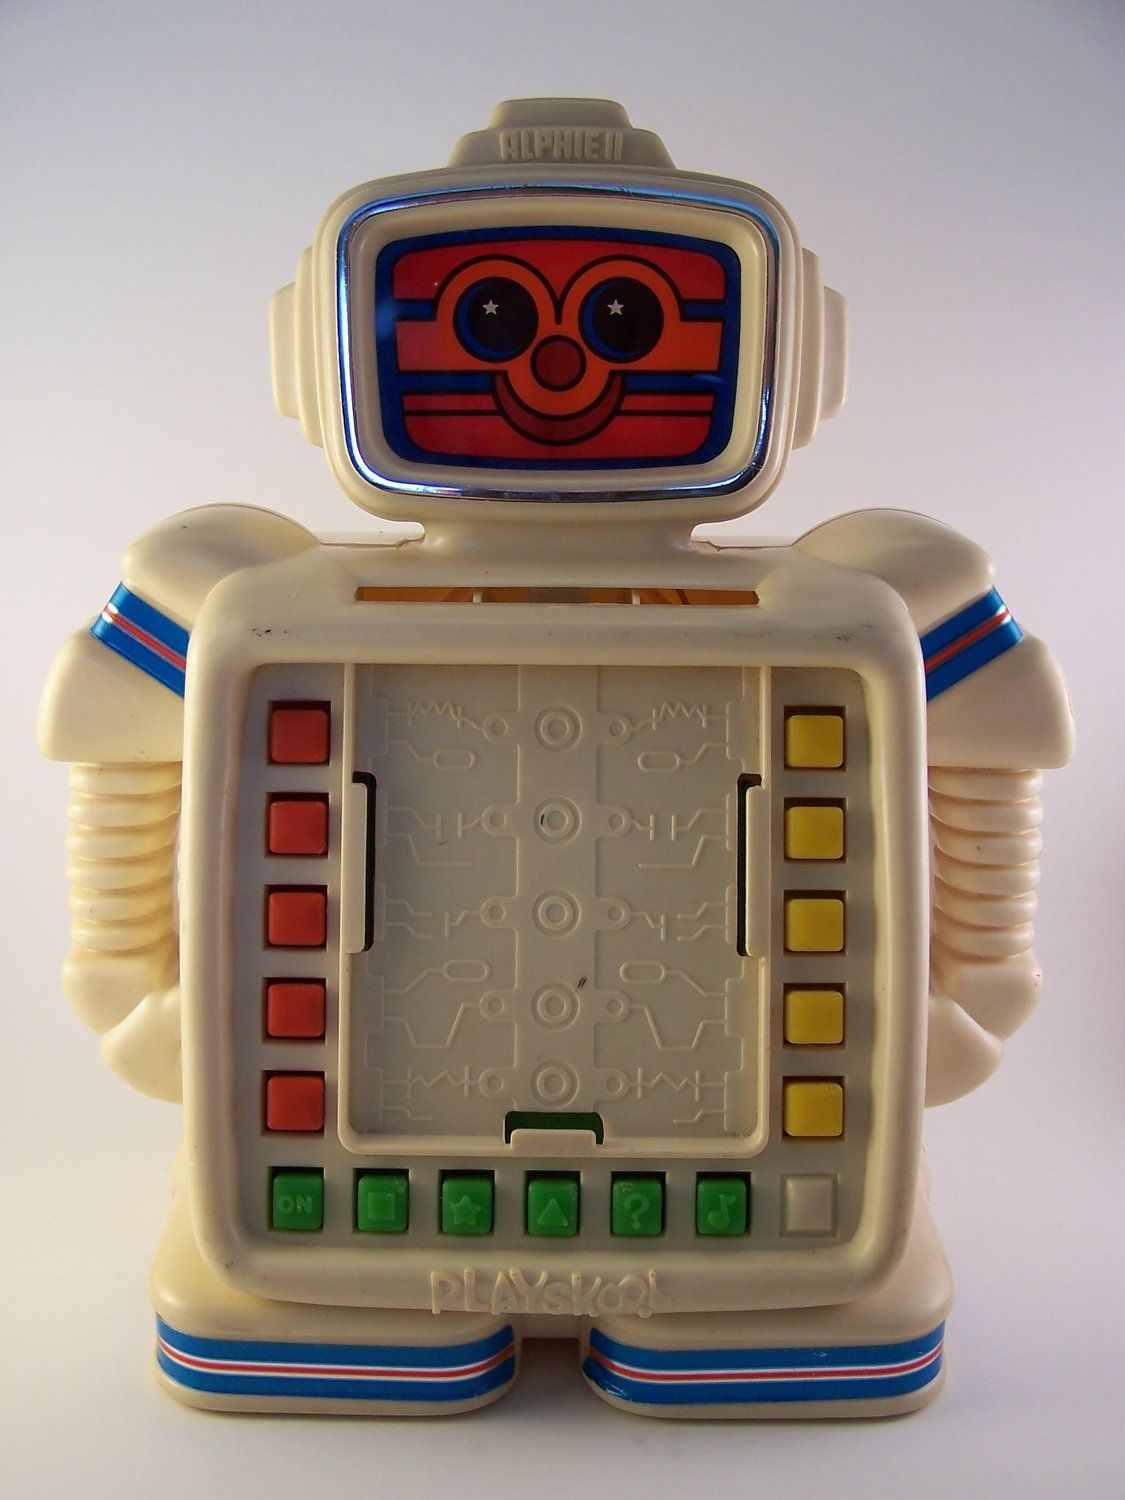 Rare Toys From The 80s : Vintage alphie ii robot toy s etsy and childhood